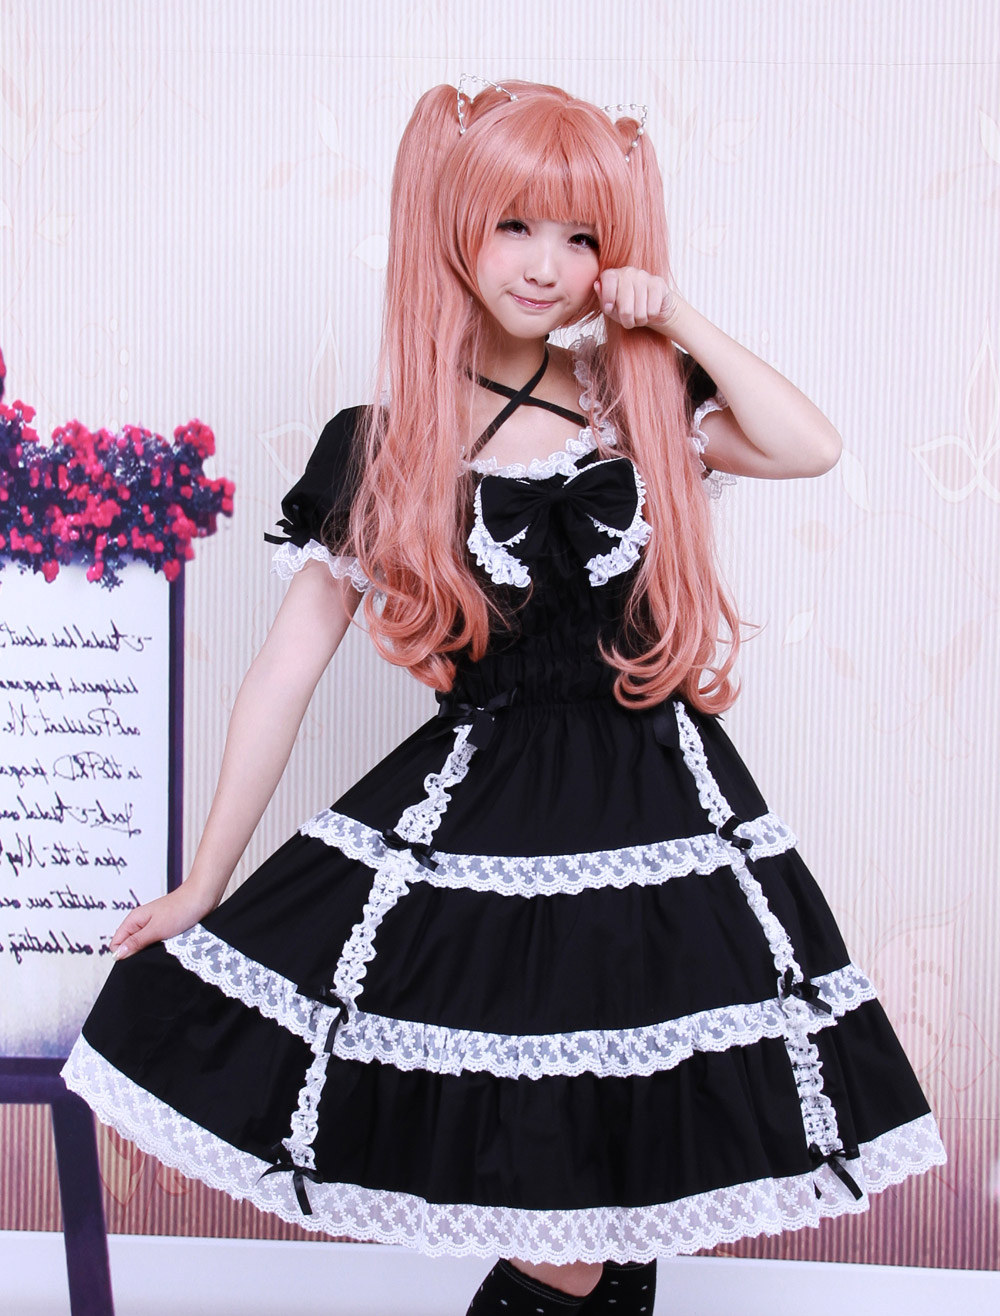 Buy Cotton Black Lace Bow Short Sleeves Gothic Lolita Dress for $78.29 in Milanoo store